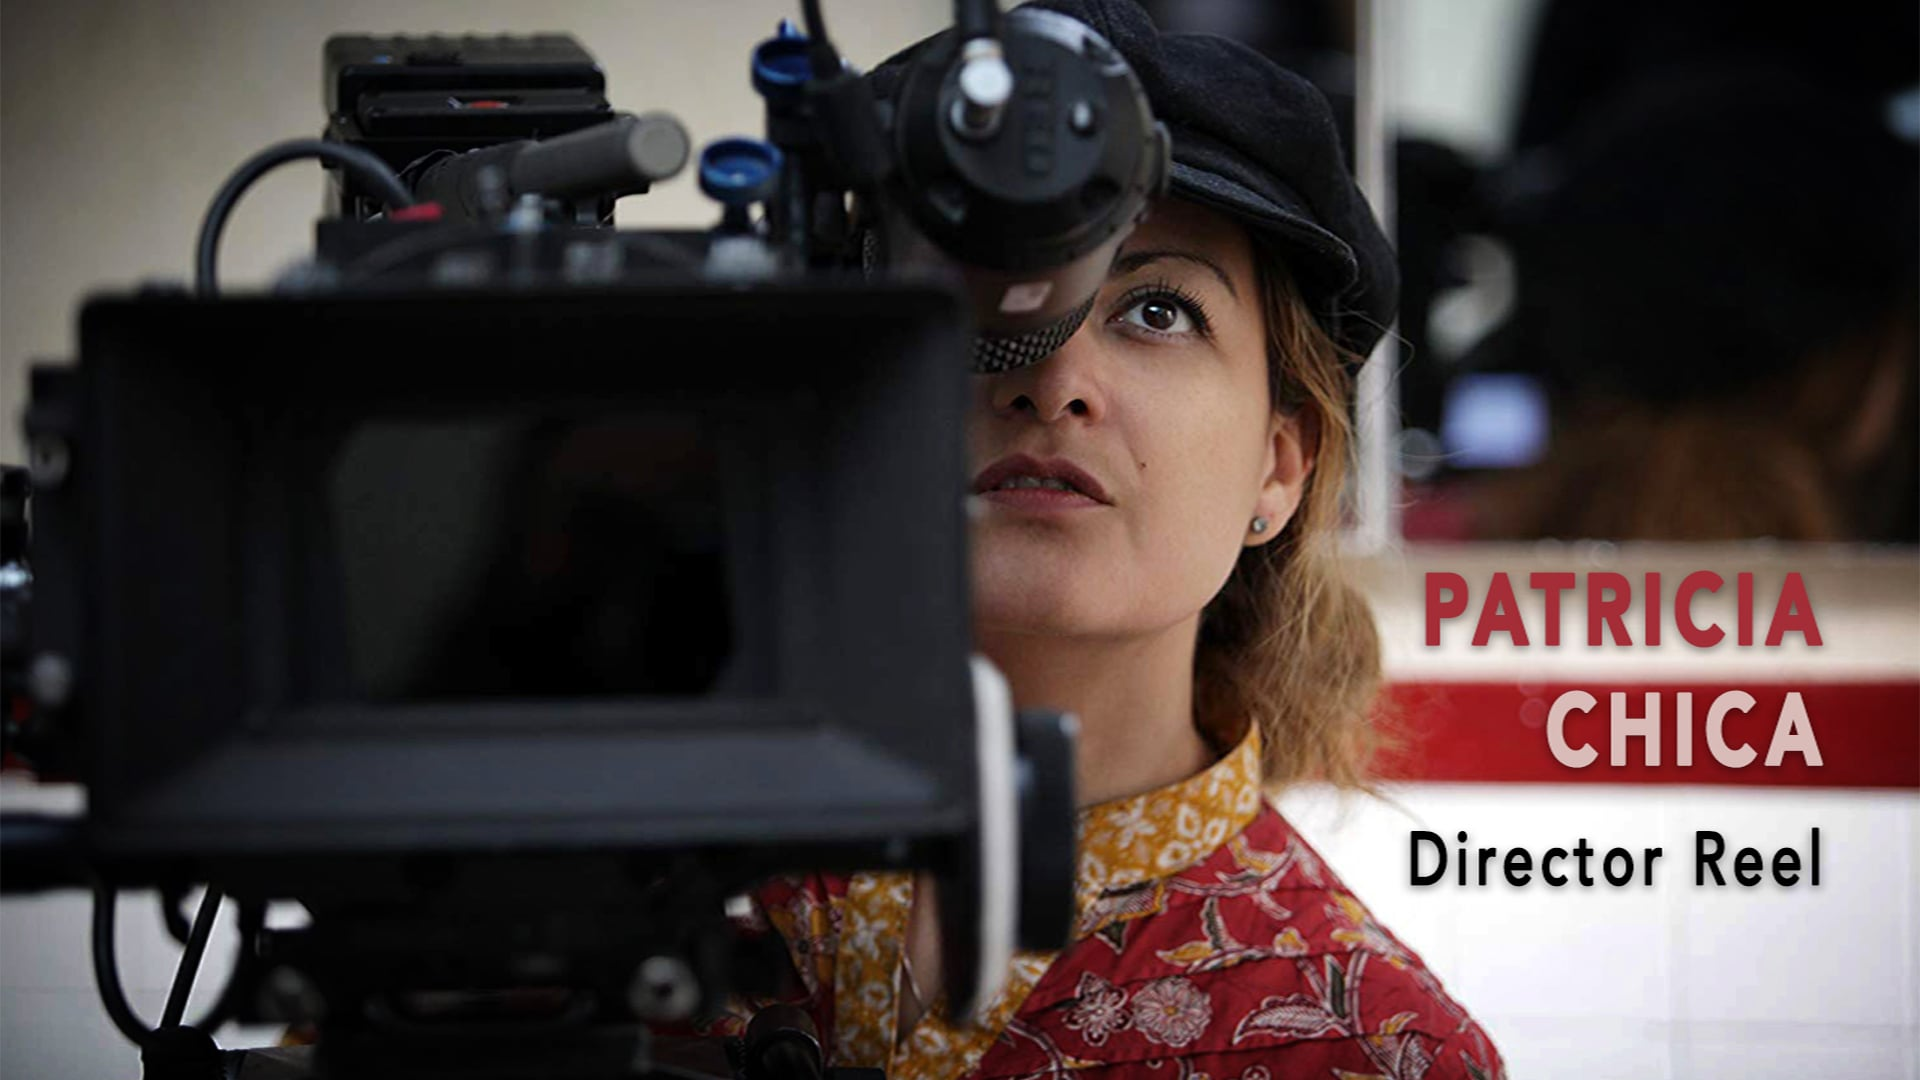 Patricia Chica - Director Reel